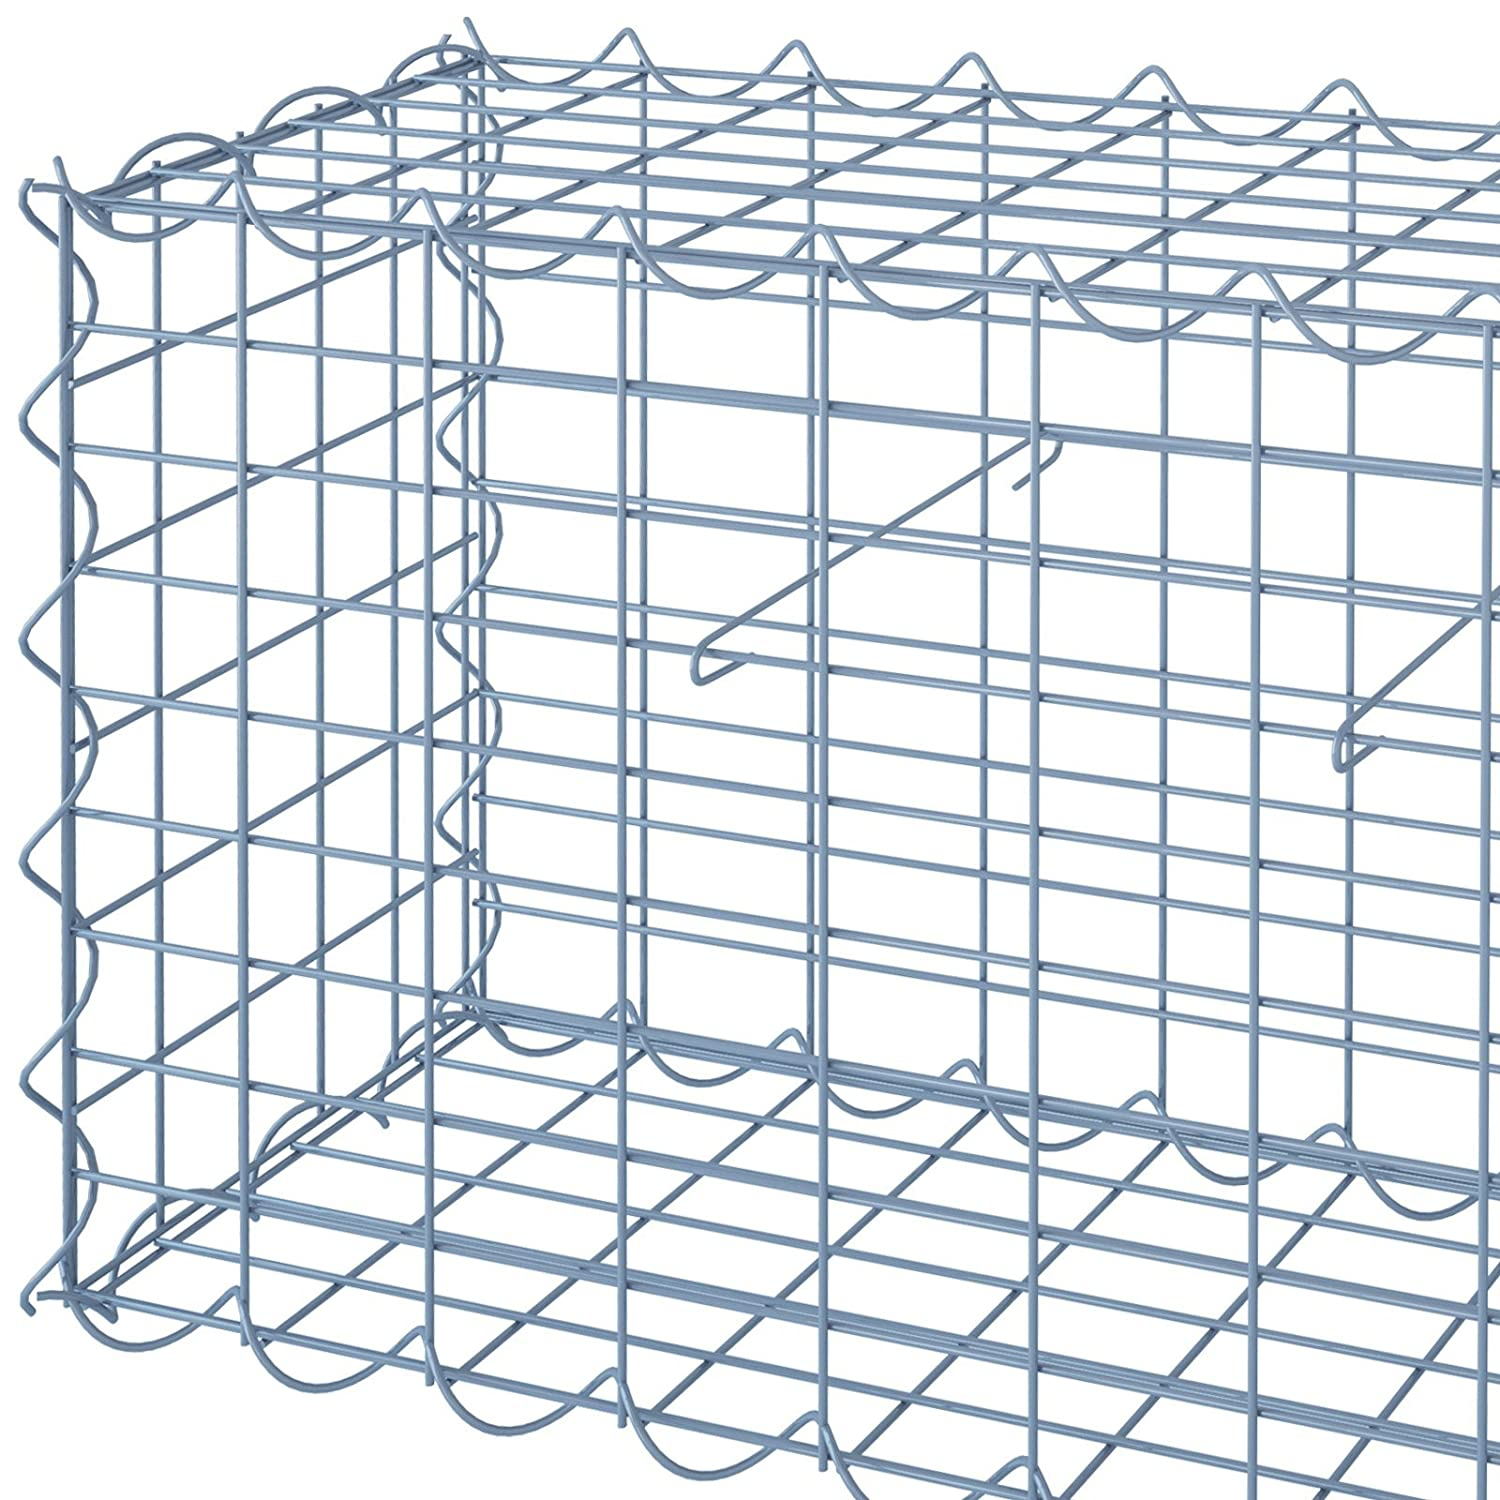 Jago Gabion Basket 4 mm Galvanized Iron Wire Welded Mesh Cage for ...